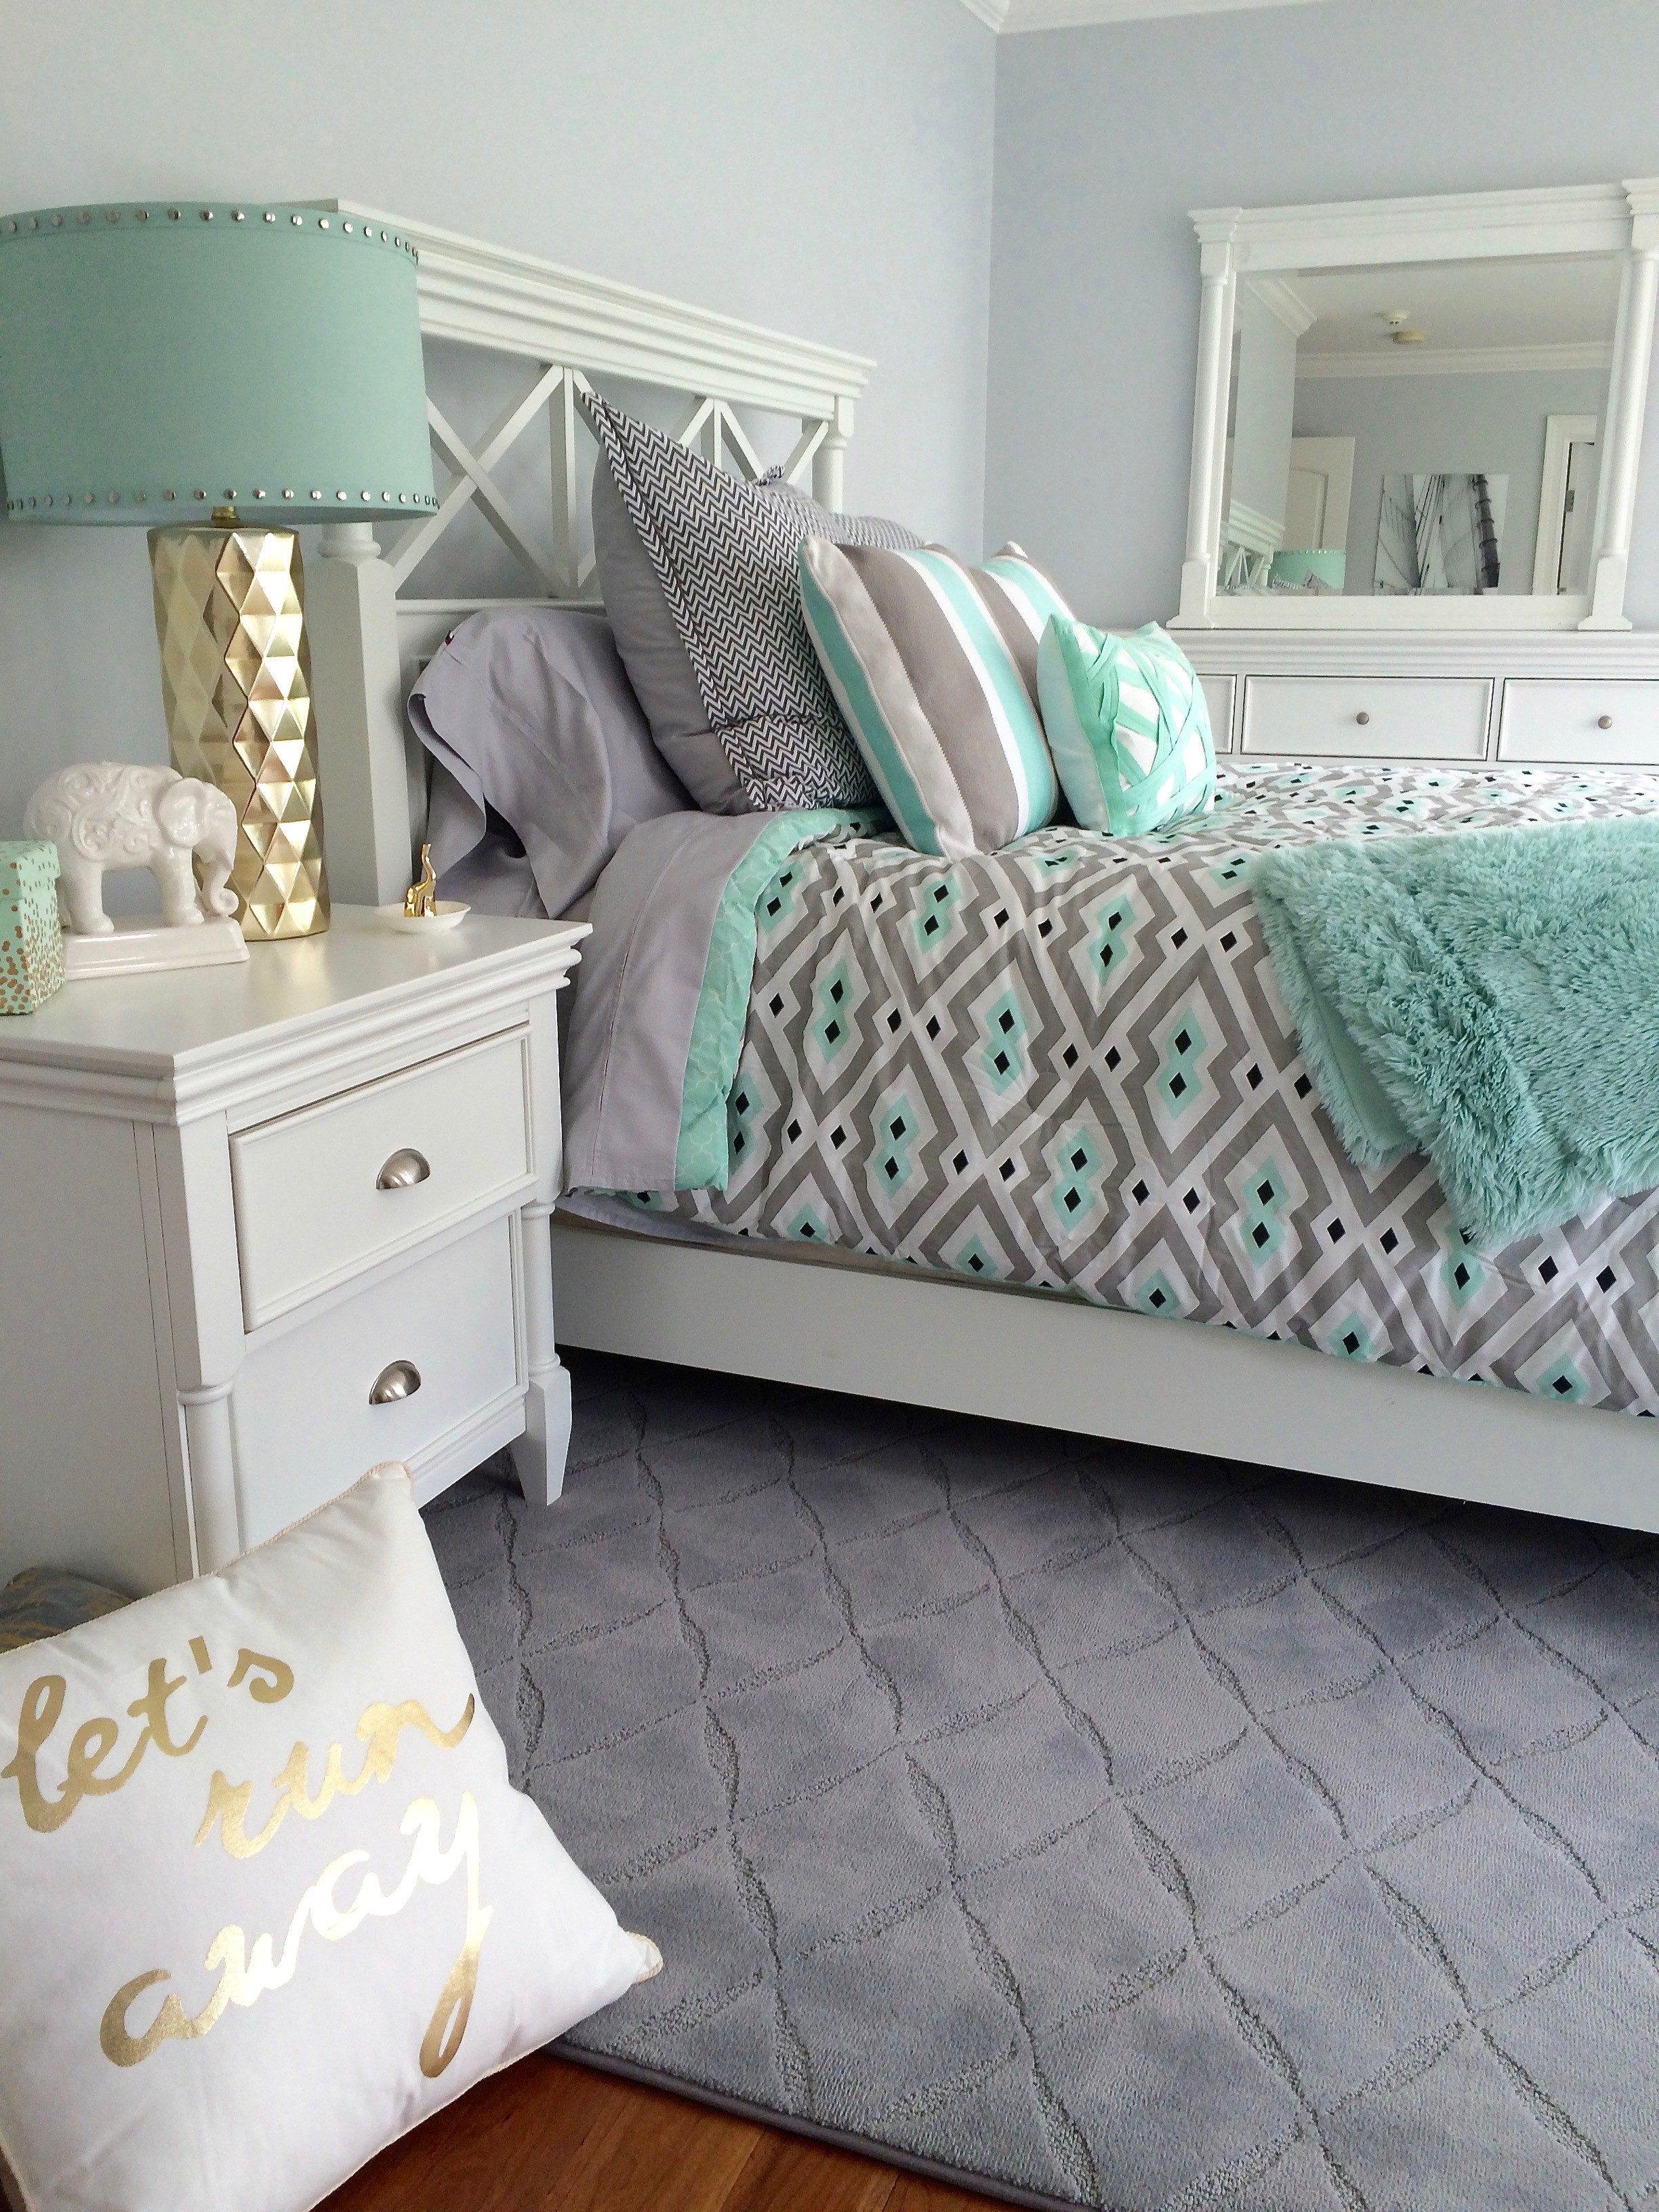 Bedroom Colors That Go With Gold 19 blissful bedroom colour scheme ideas - the luxpad